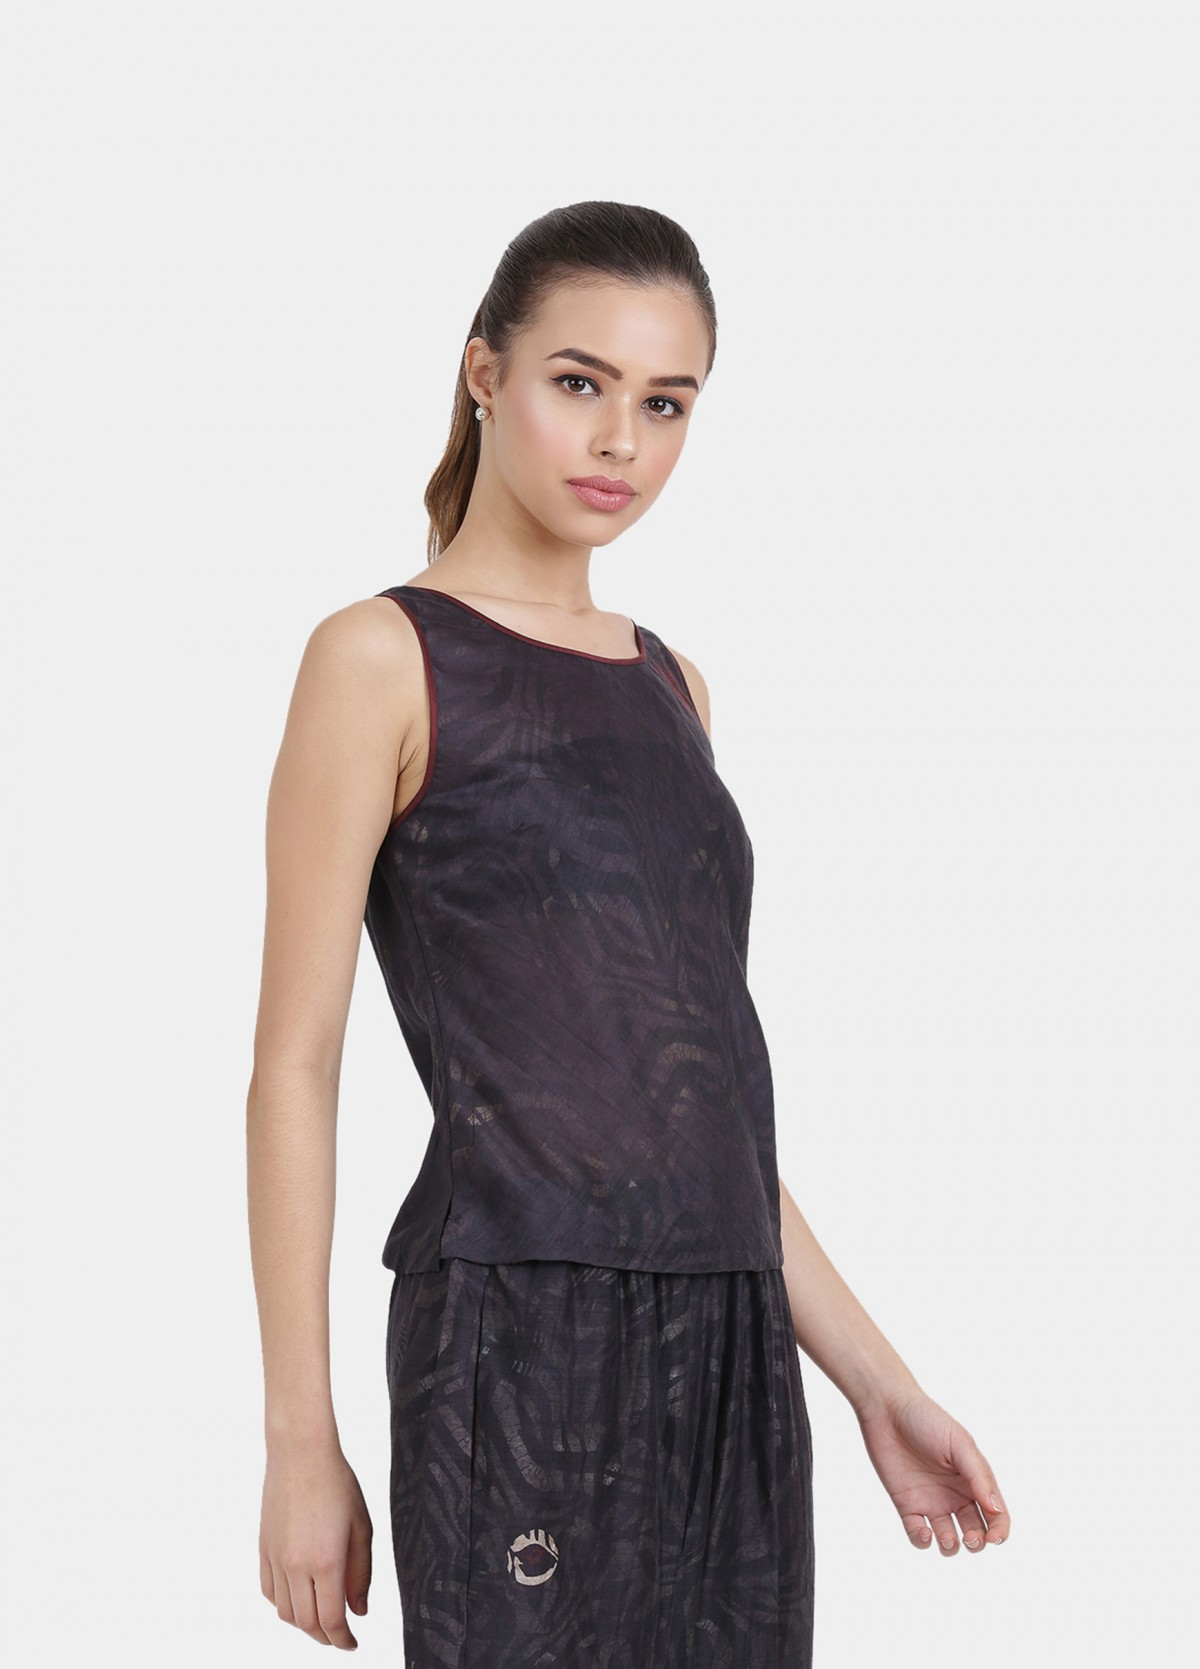 The Moody Marti Top